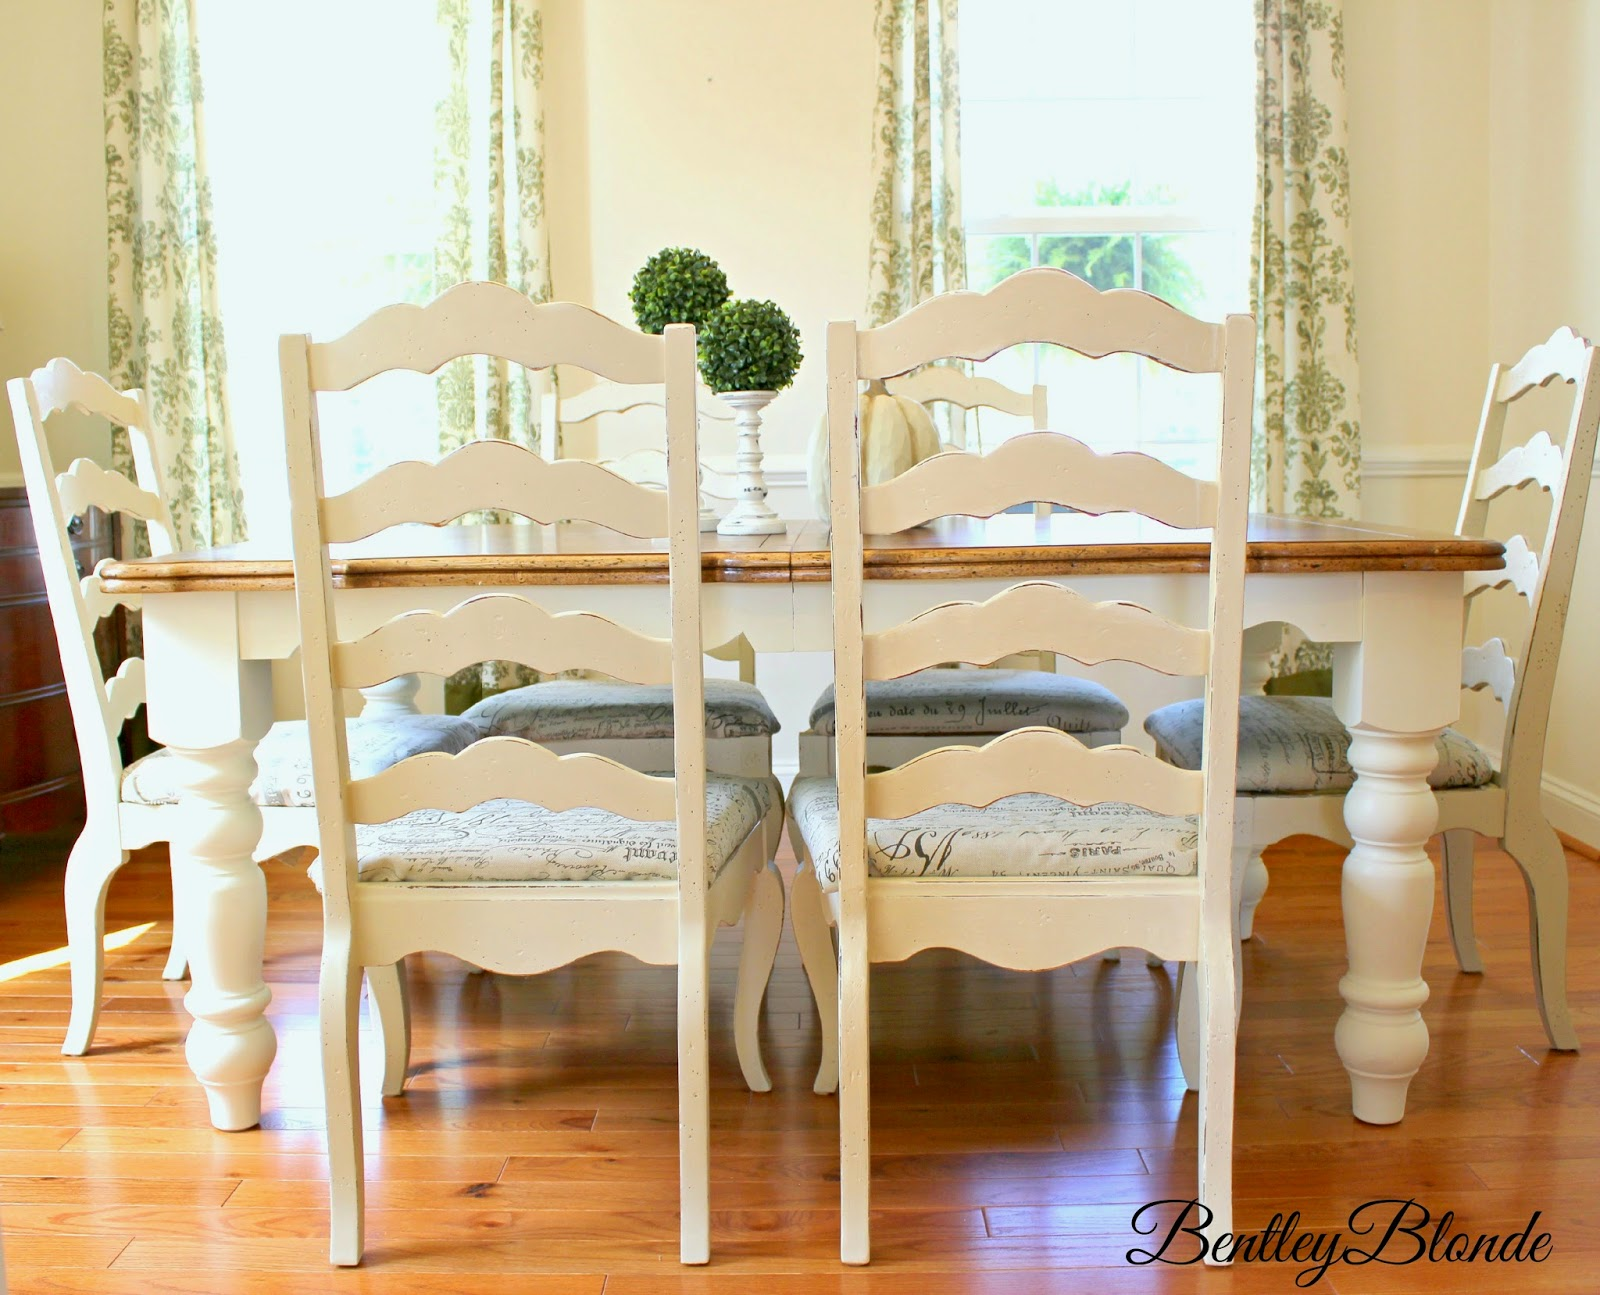 BentleyBlonde DIY Farmhouse Table u0026 Dining Set Makeover with Annie Sloan Chalk Paint® & BentleyBlonde: DIY Farmhouse Table u0026 Dining Set Makeover with Annie ...